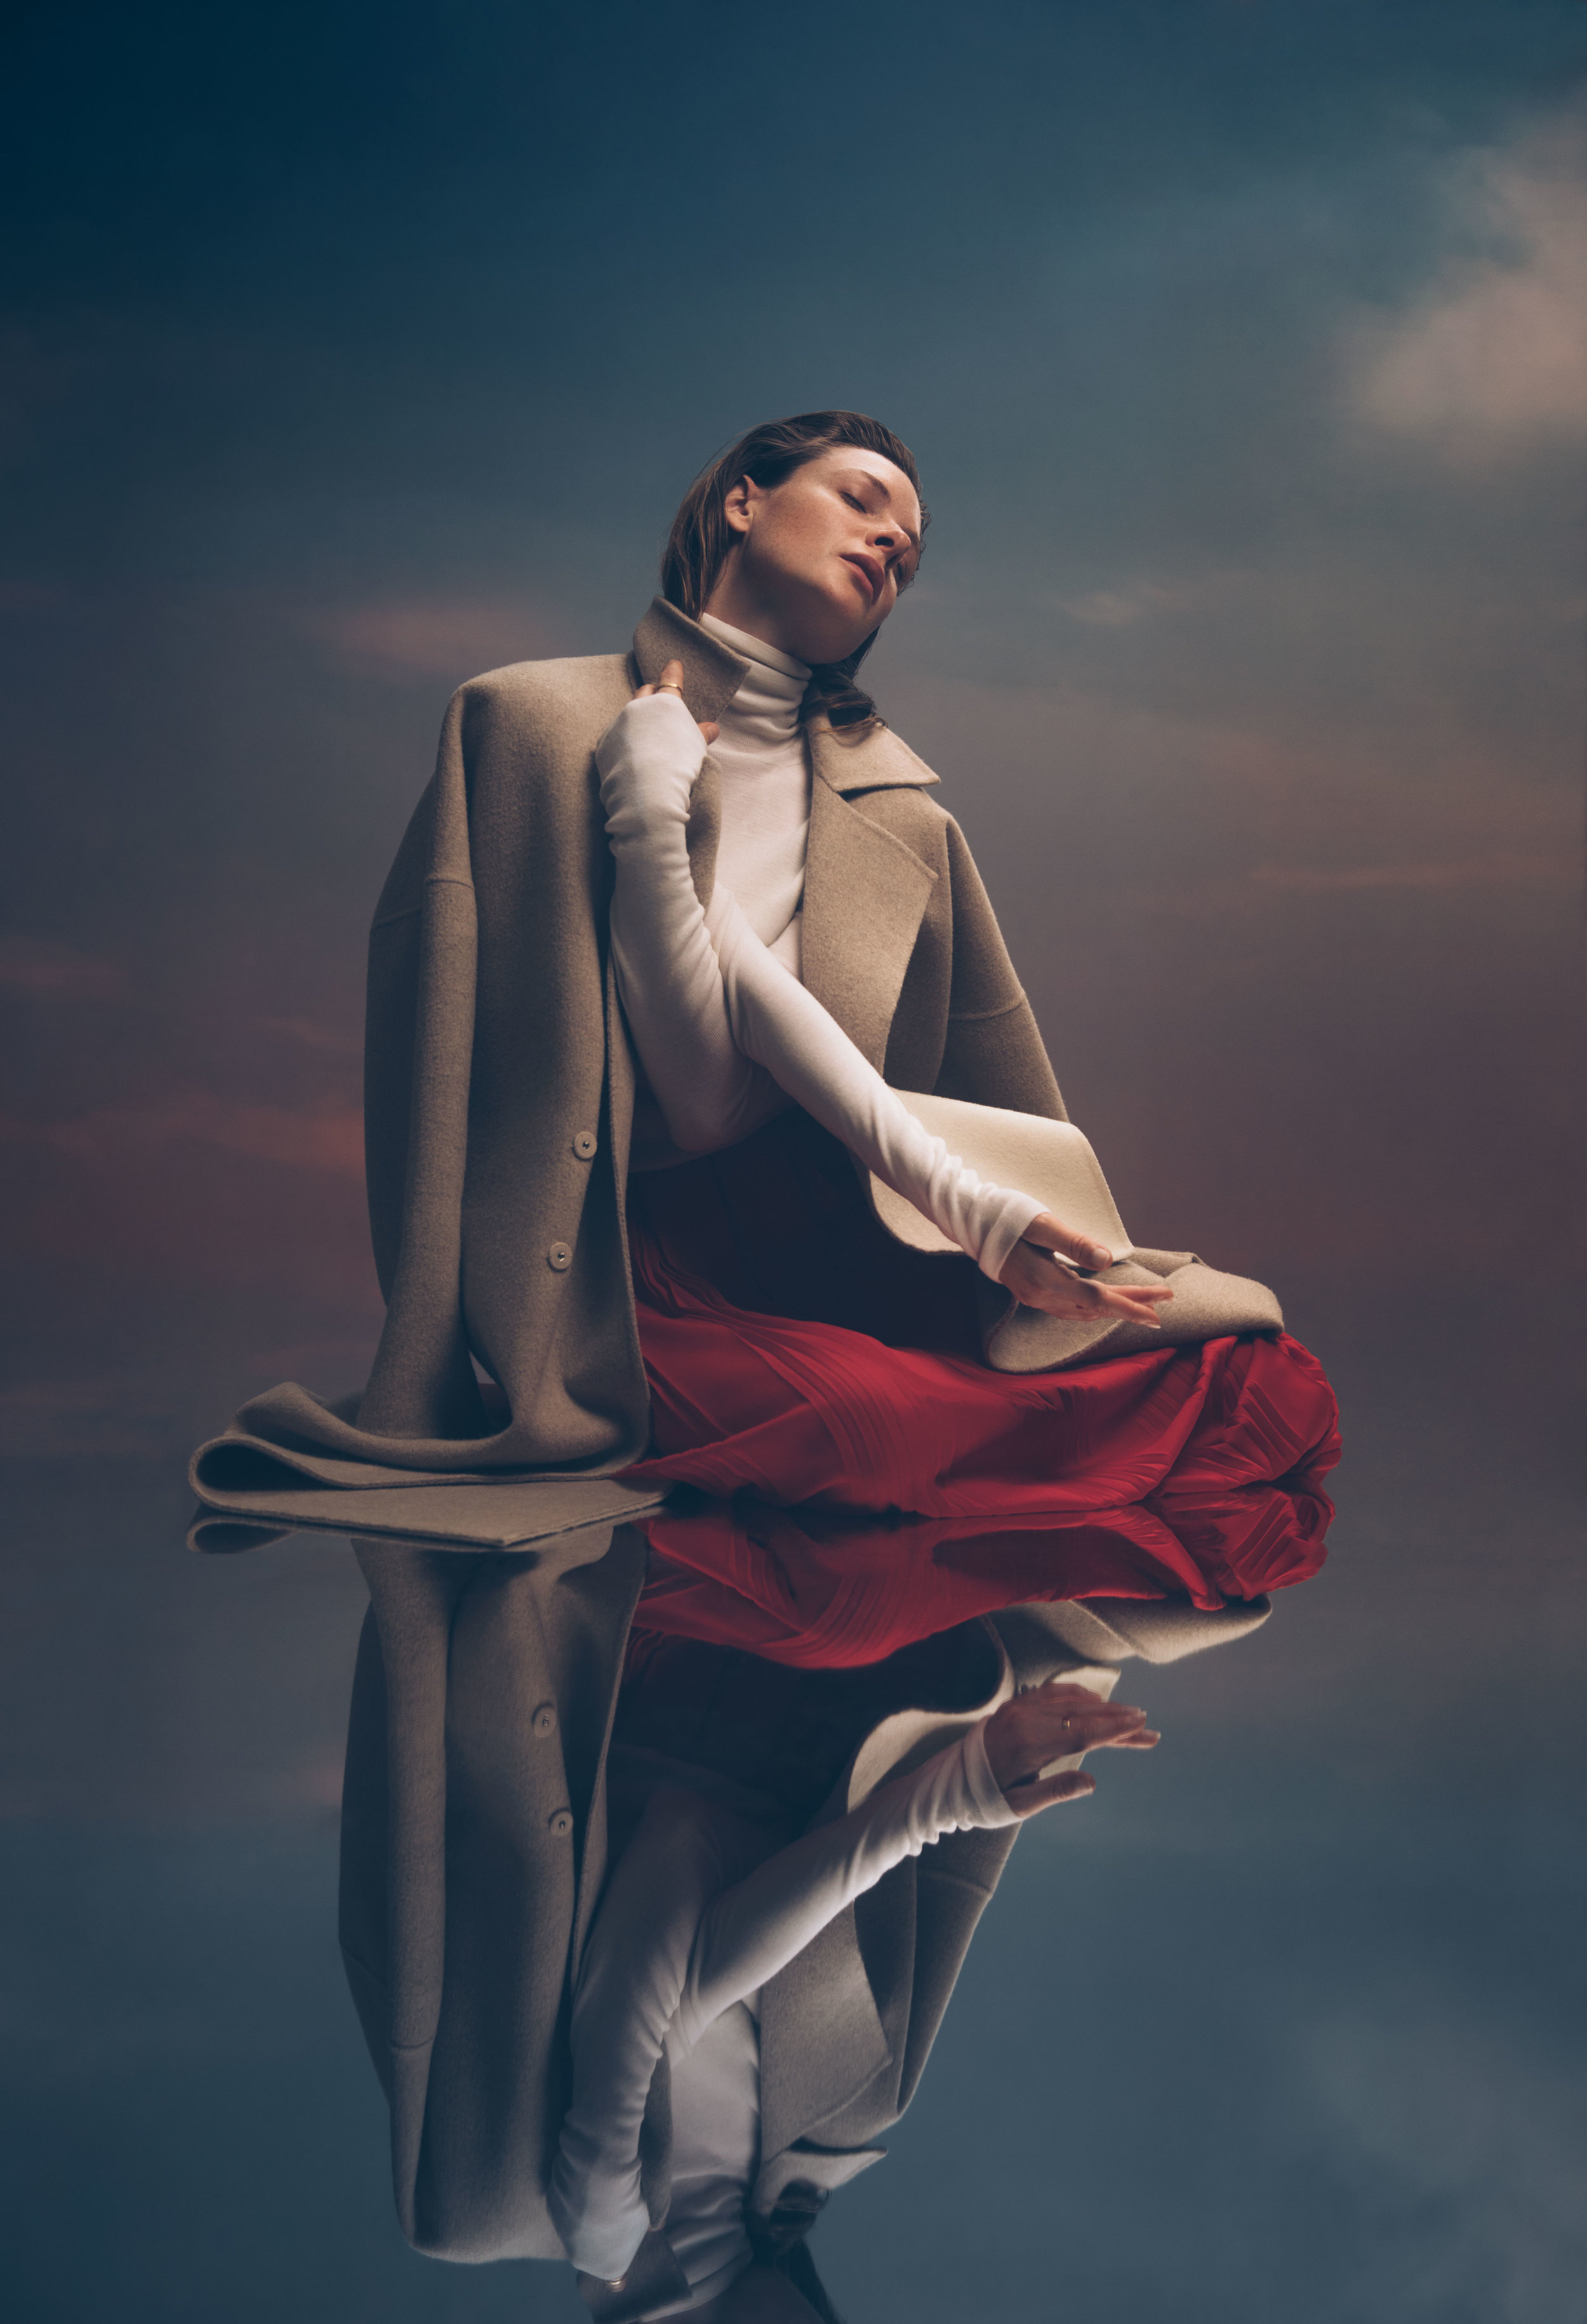 all images shot by Crown & Owls | FASHION CREDITS:  REJINA PYO  coat,  VIONNET  turtleneck and skirt,  SOPHIA WEBSTER  shoes,  ALIGHIERI  pinky ring (worn throughout), and  EKRIA  rings